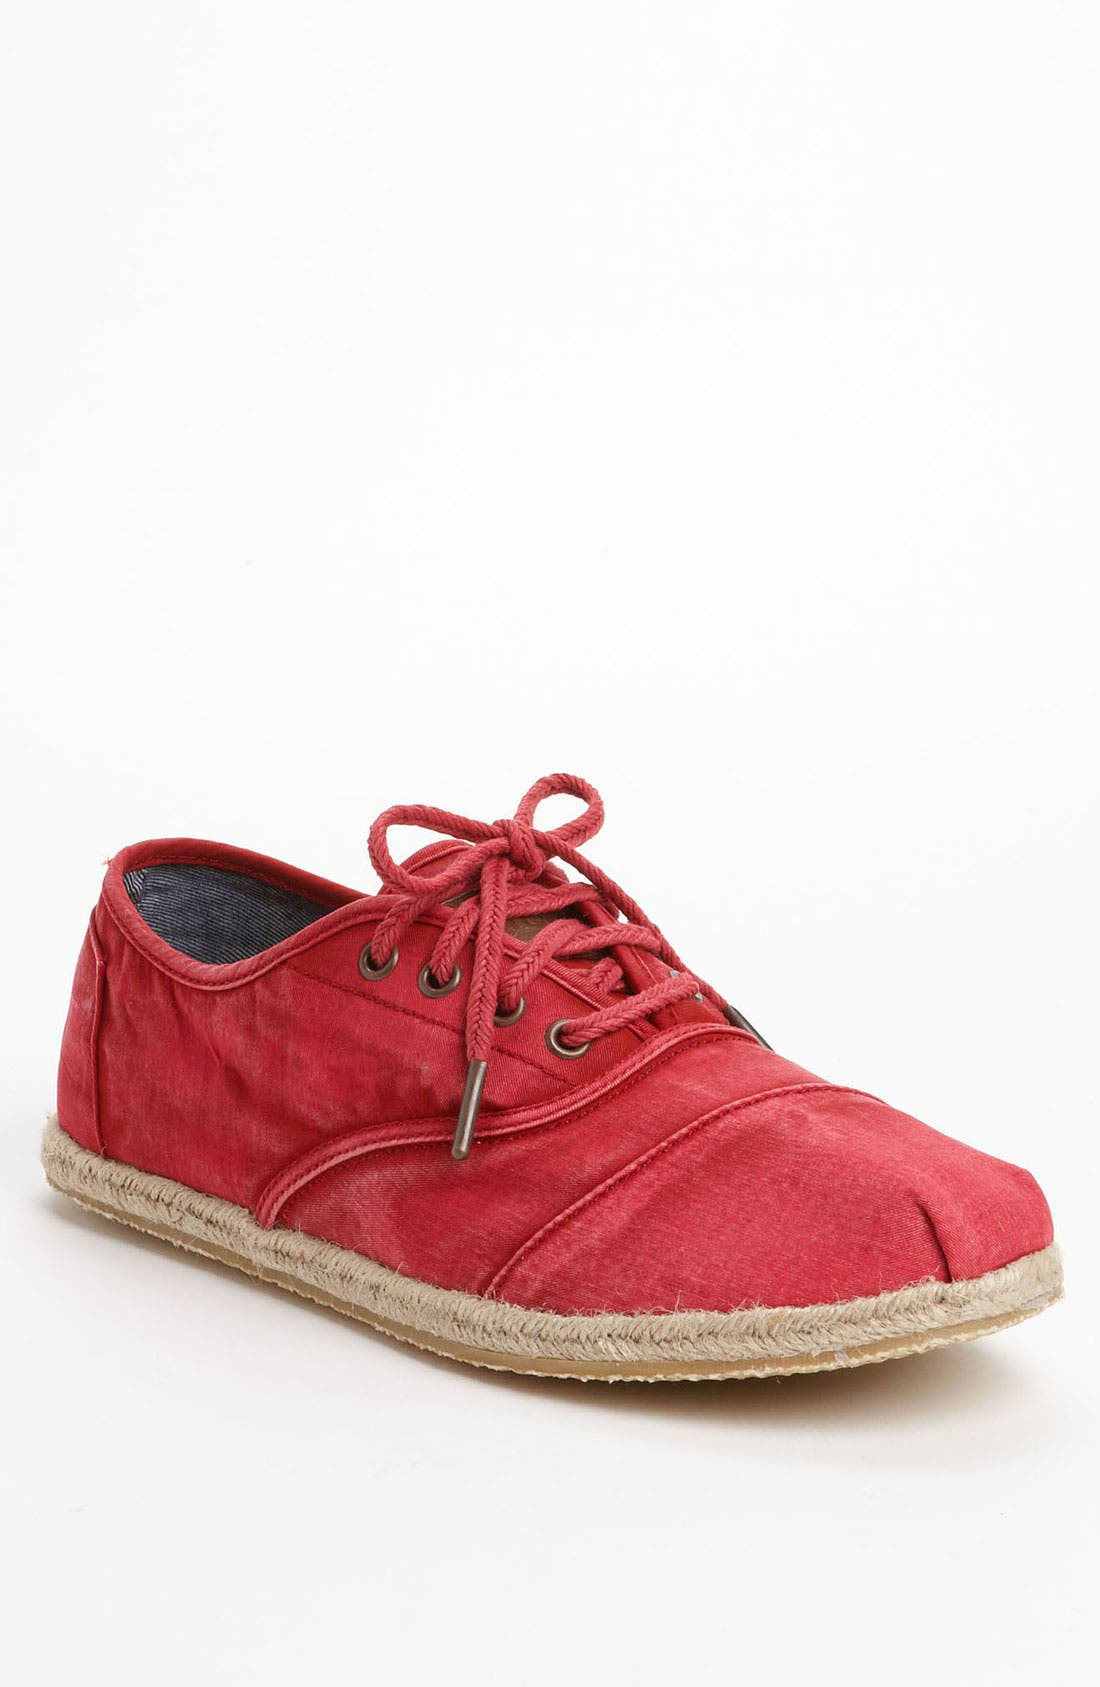 Alternate Image 1 Selected - TOMS 'Cordones' Sneaker (Men)